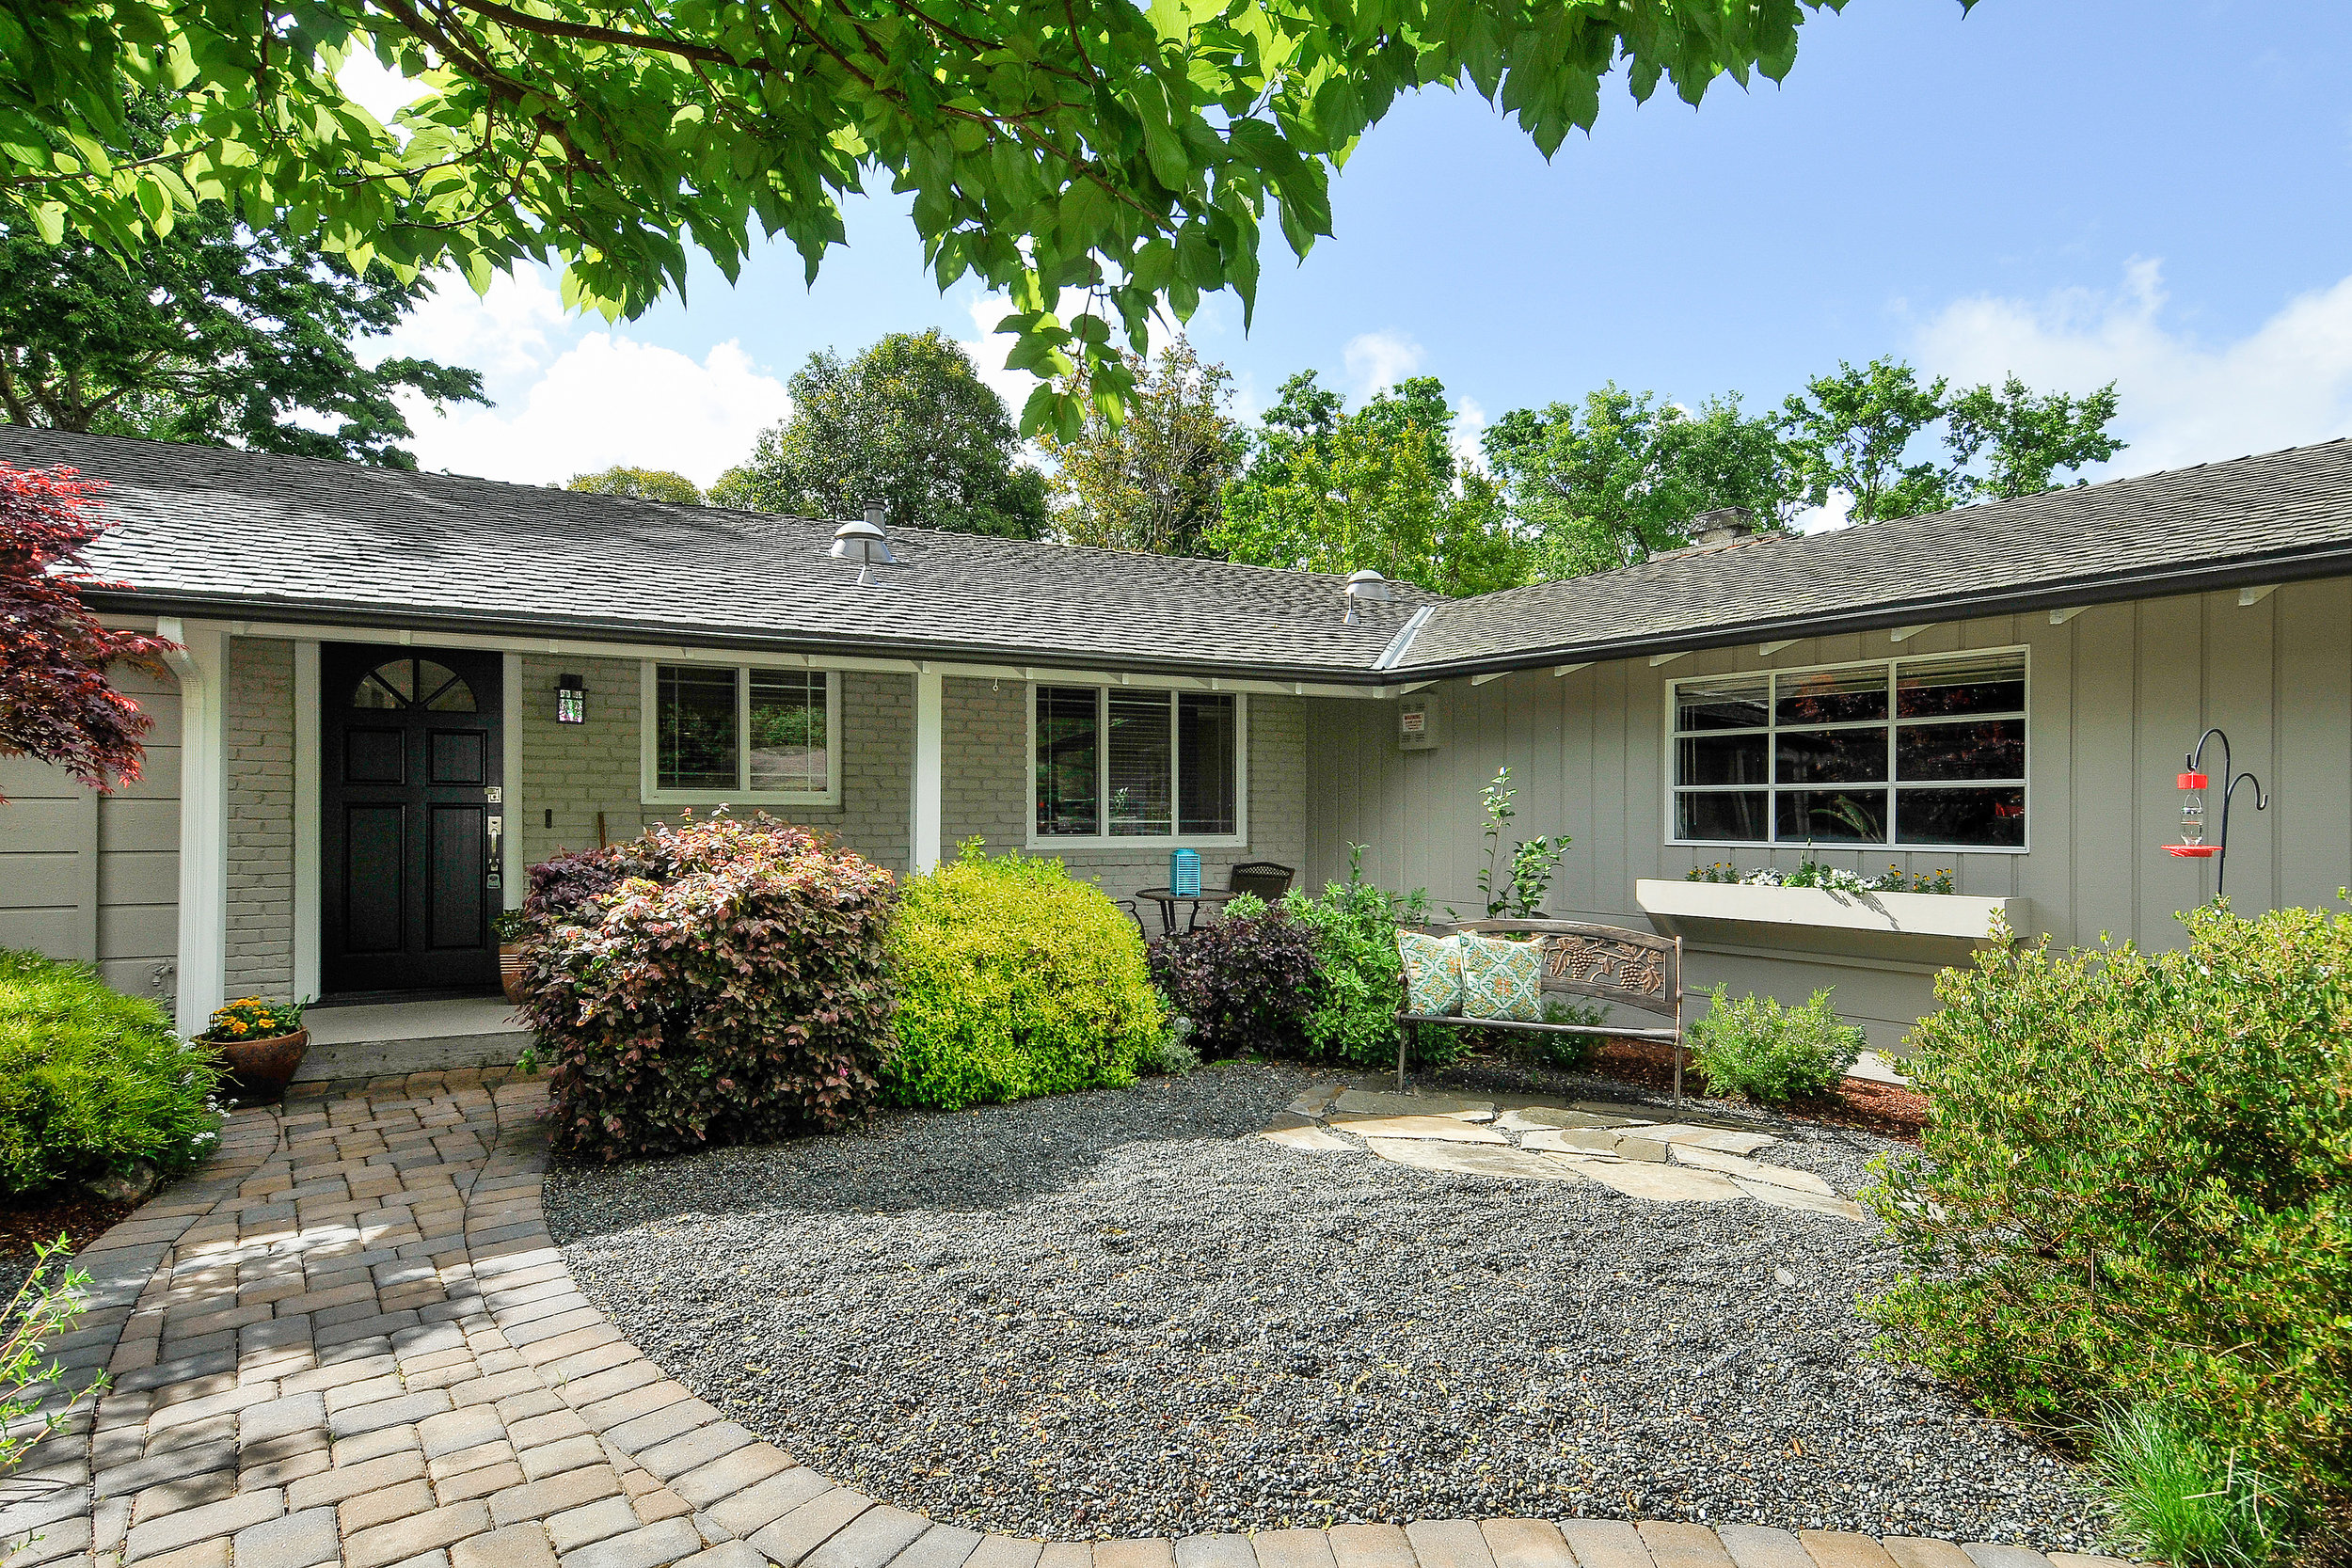 12 calvin court, walnut creek, ca  listed: $975,000 sold: $1,170,000 represented seller